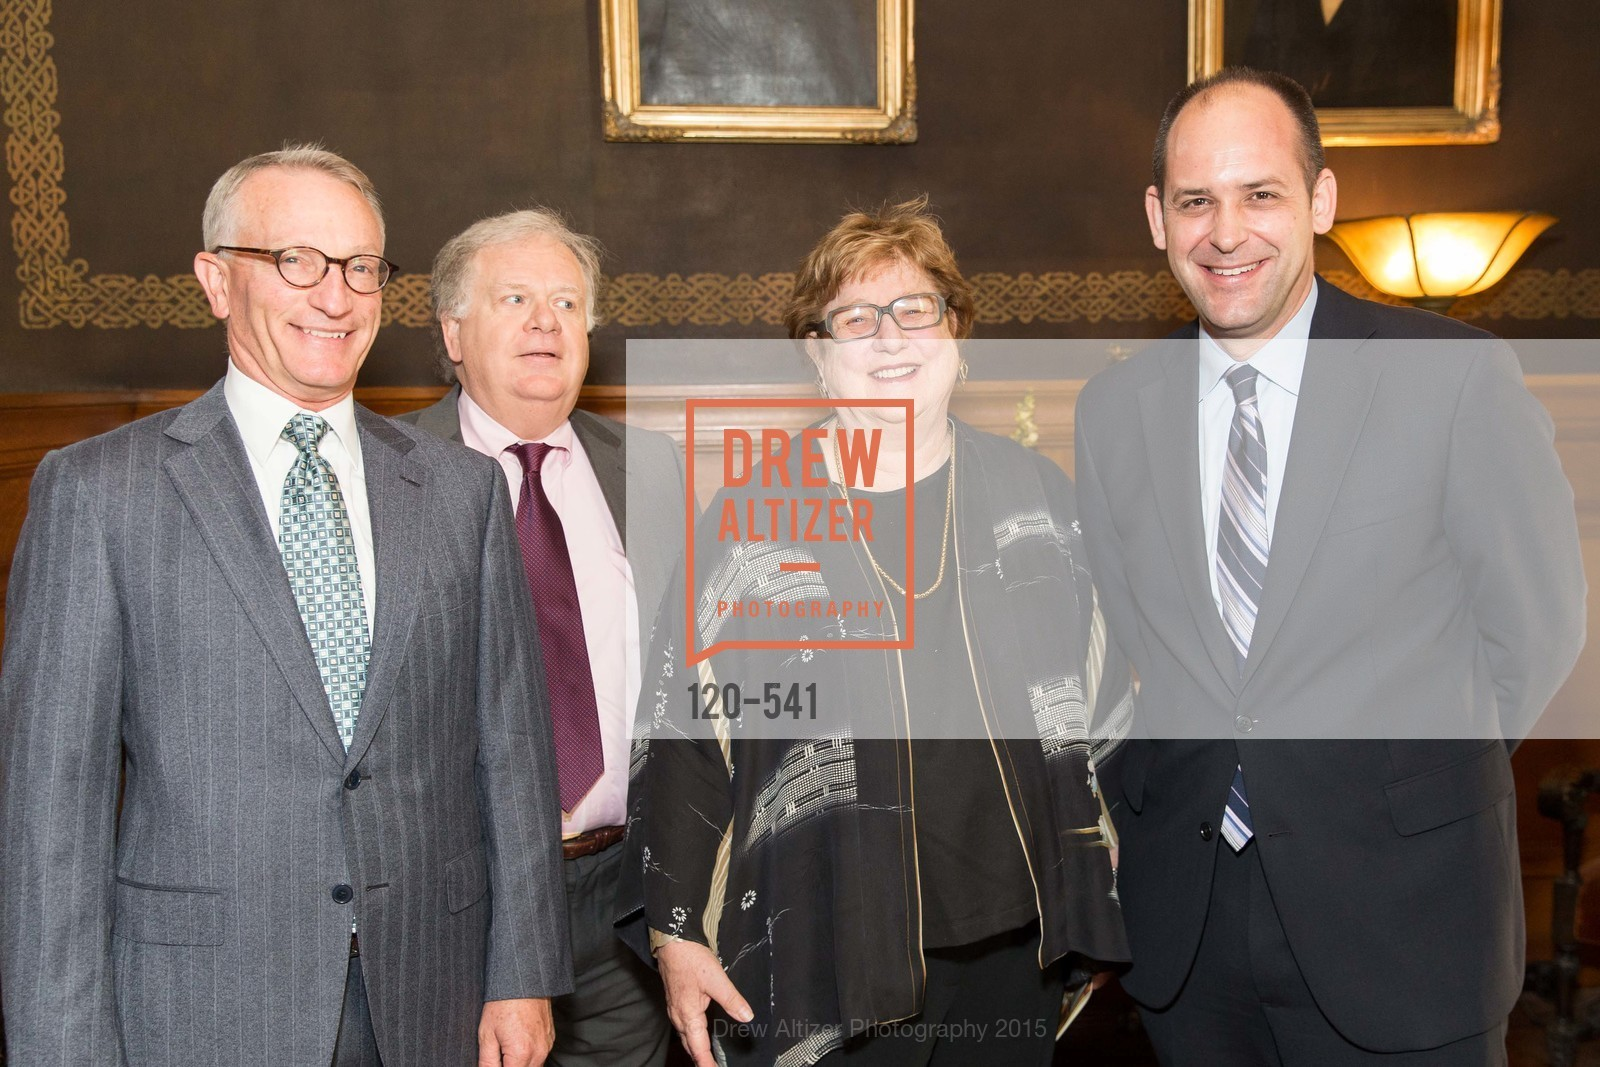 David Wessel, Bruce Bonacker, Linda Jo Fitz, Mike Buhler, Ceremony Inaugurating the Campaign for San Francisco Heritage & Haas-Lilienthal House, Haas-Lilienthal House. 2007 Franklin Street, November 18th, 2015,Drew Altizer, Drew Altizer Photography, full-service agency, private events, San Francisco photographer, photographer california